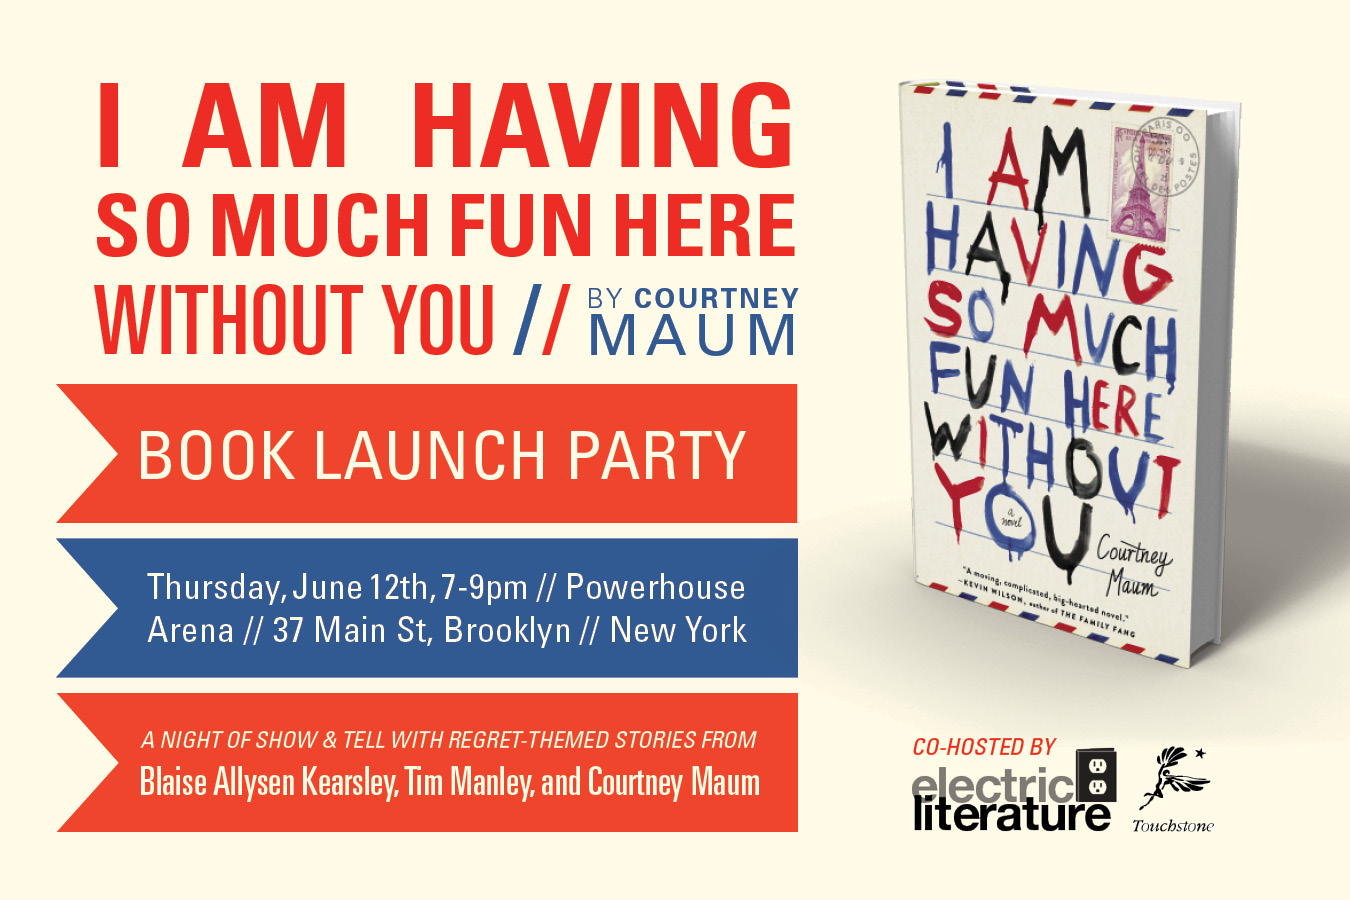 Book Launch: I Am Having So Much Fun Here Without You by Courtney Maum, with Blaise Allysen Kearsley and Tim Manley, co-hosted by Electric Literature